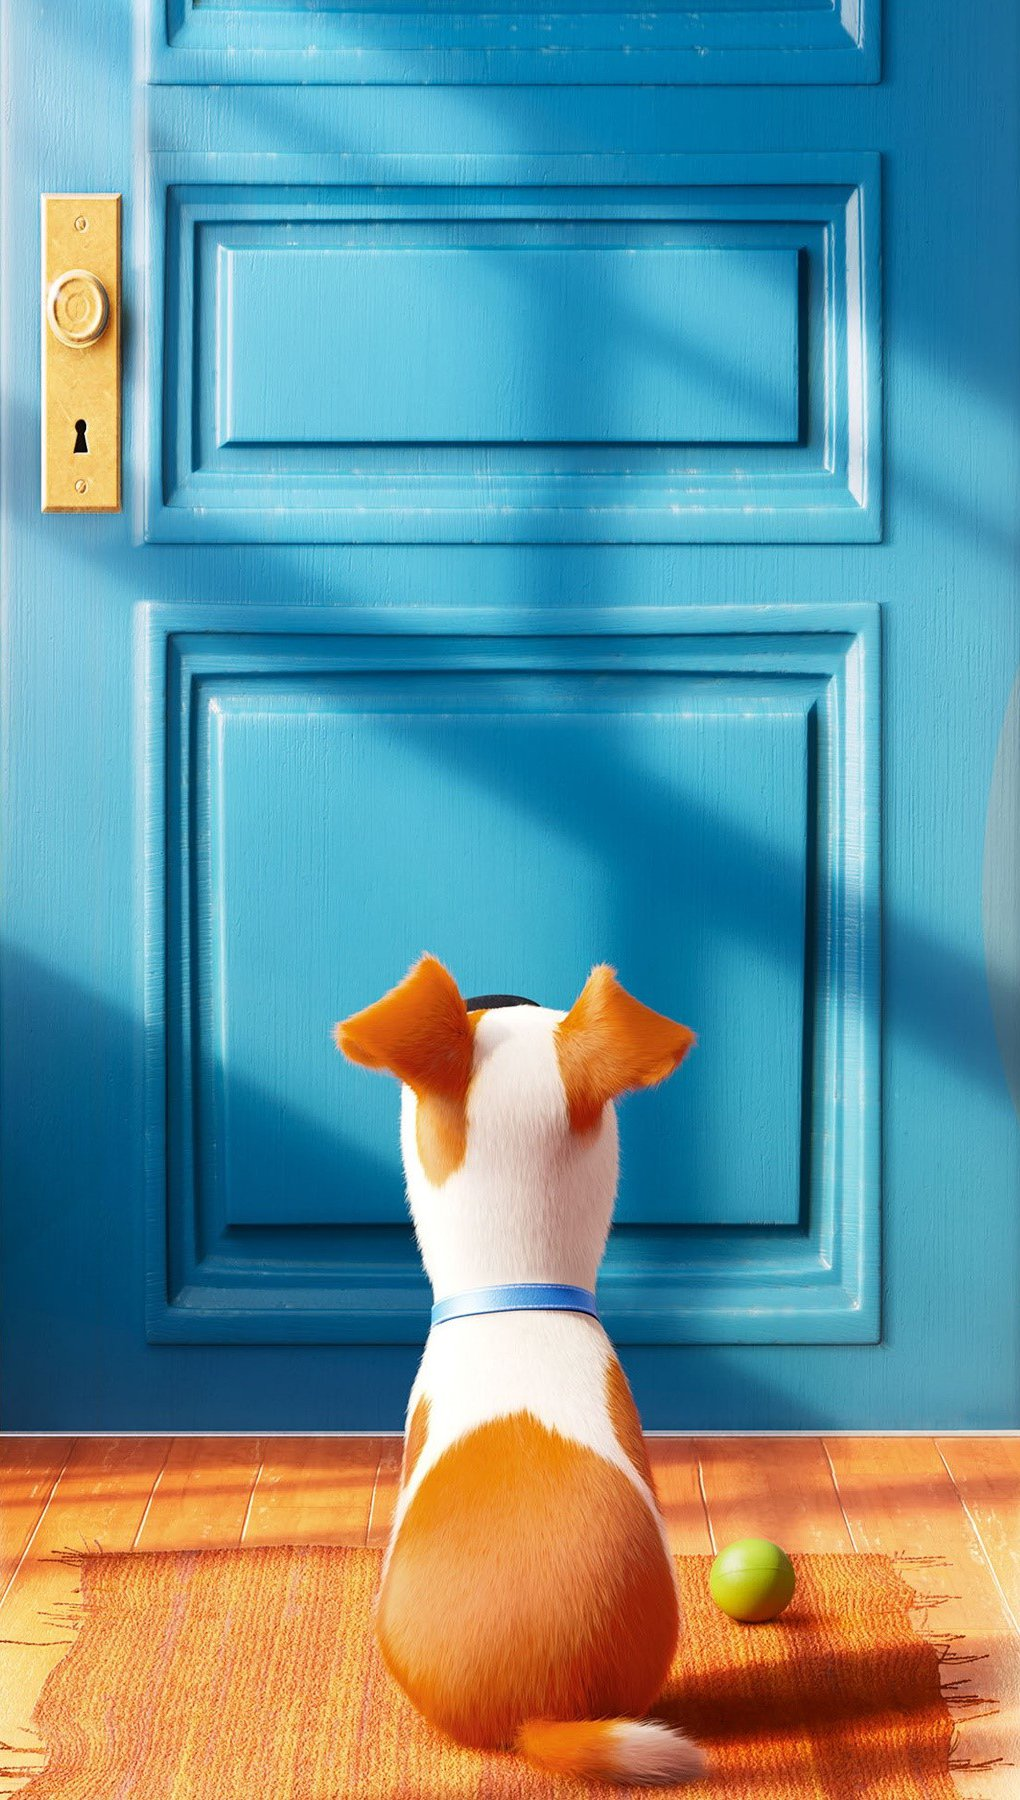 Wallpaper The secret life of pets Vertical